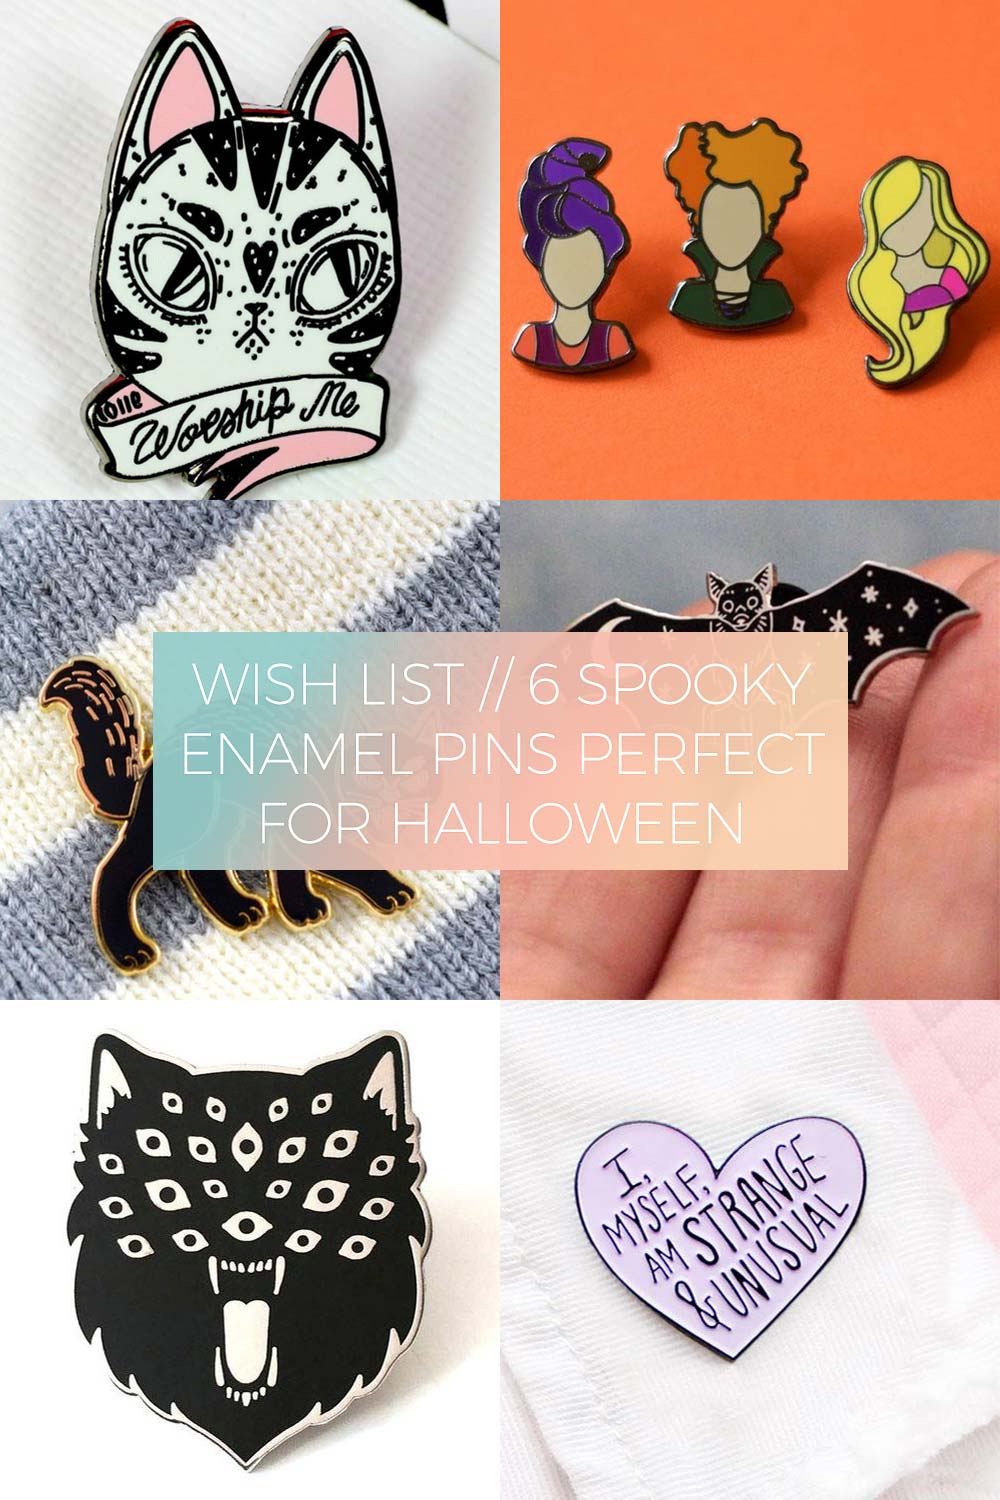 6 Spooky Enamel Pins Perfect for Halloween // Wish List